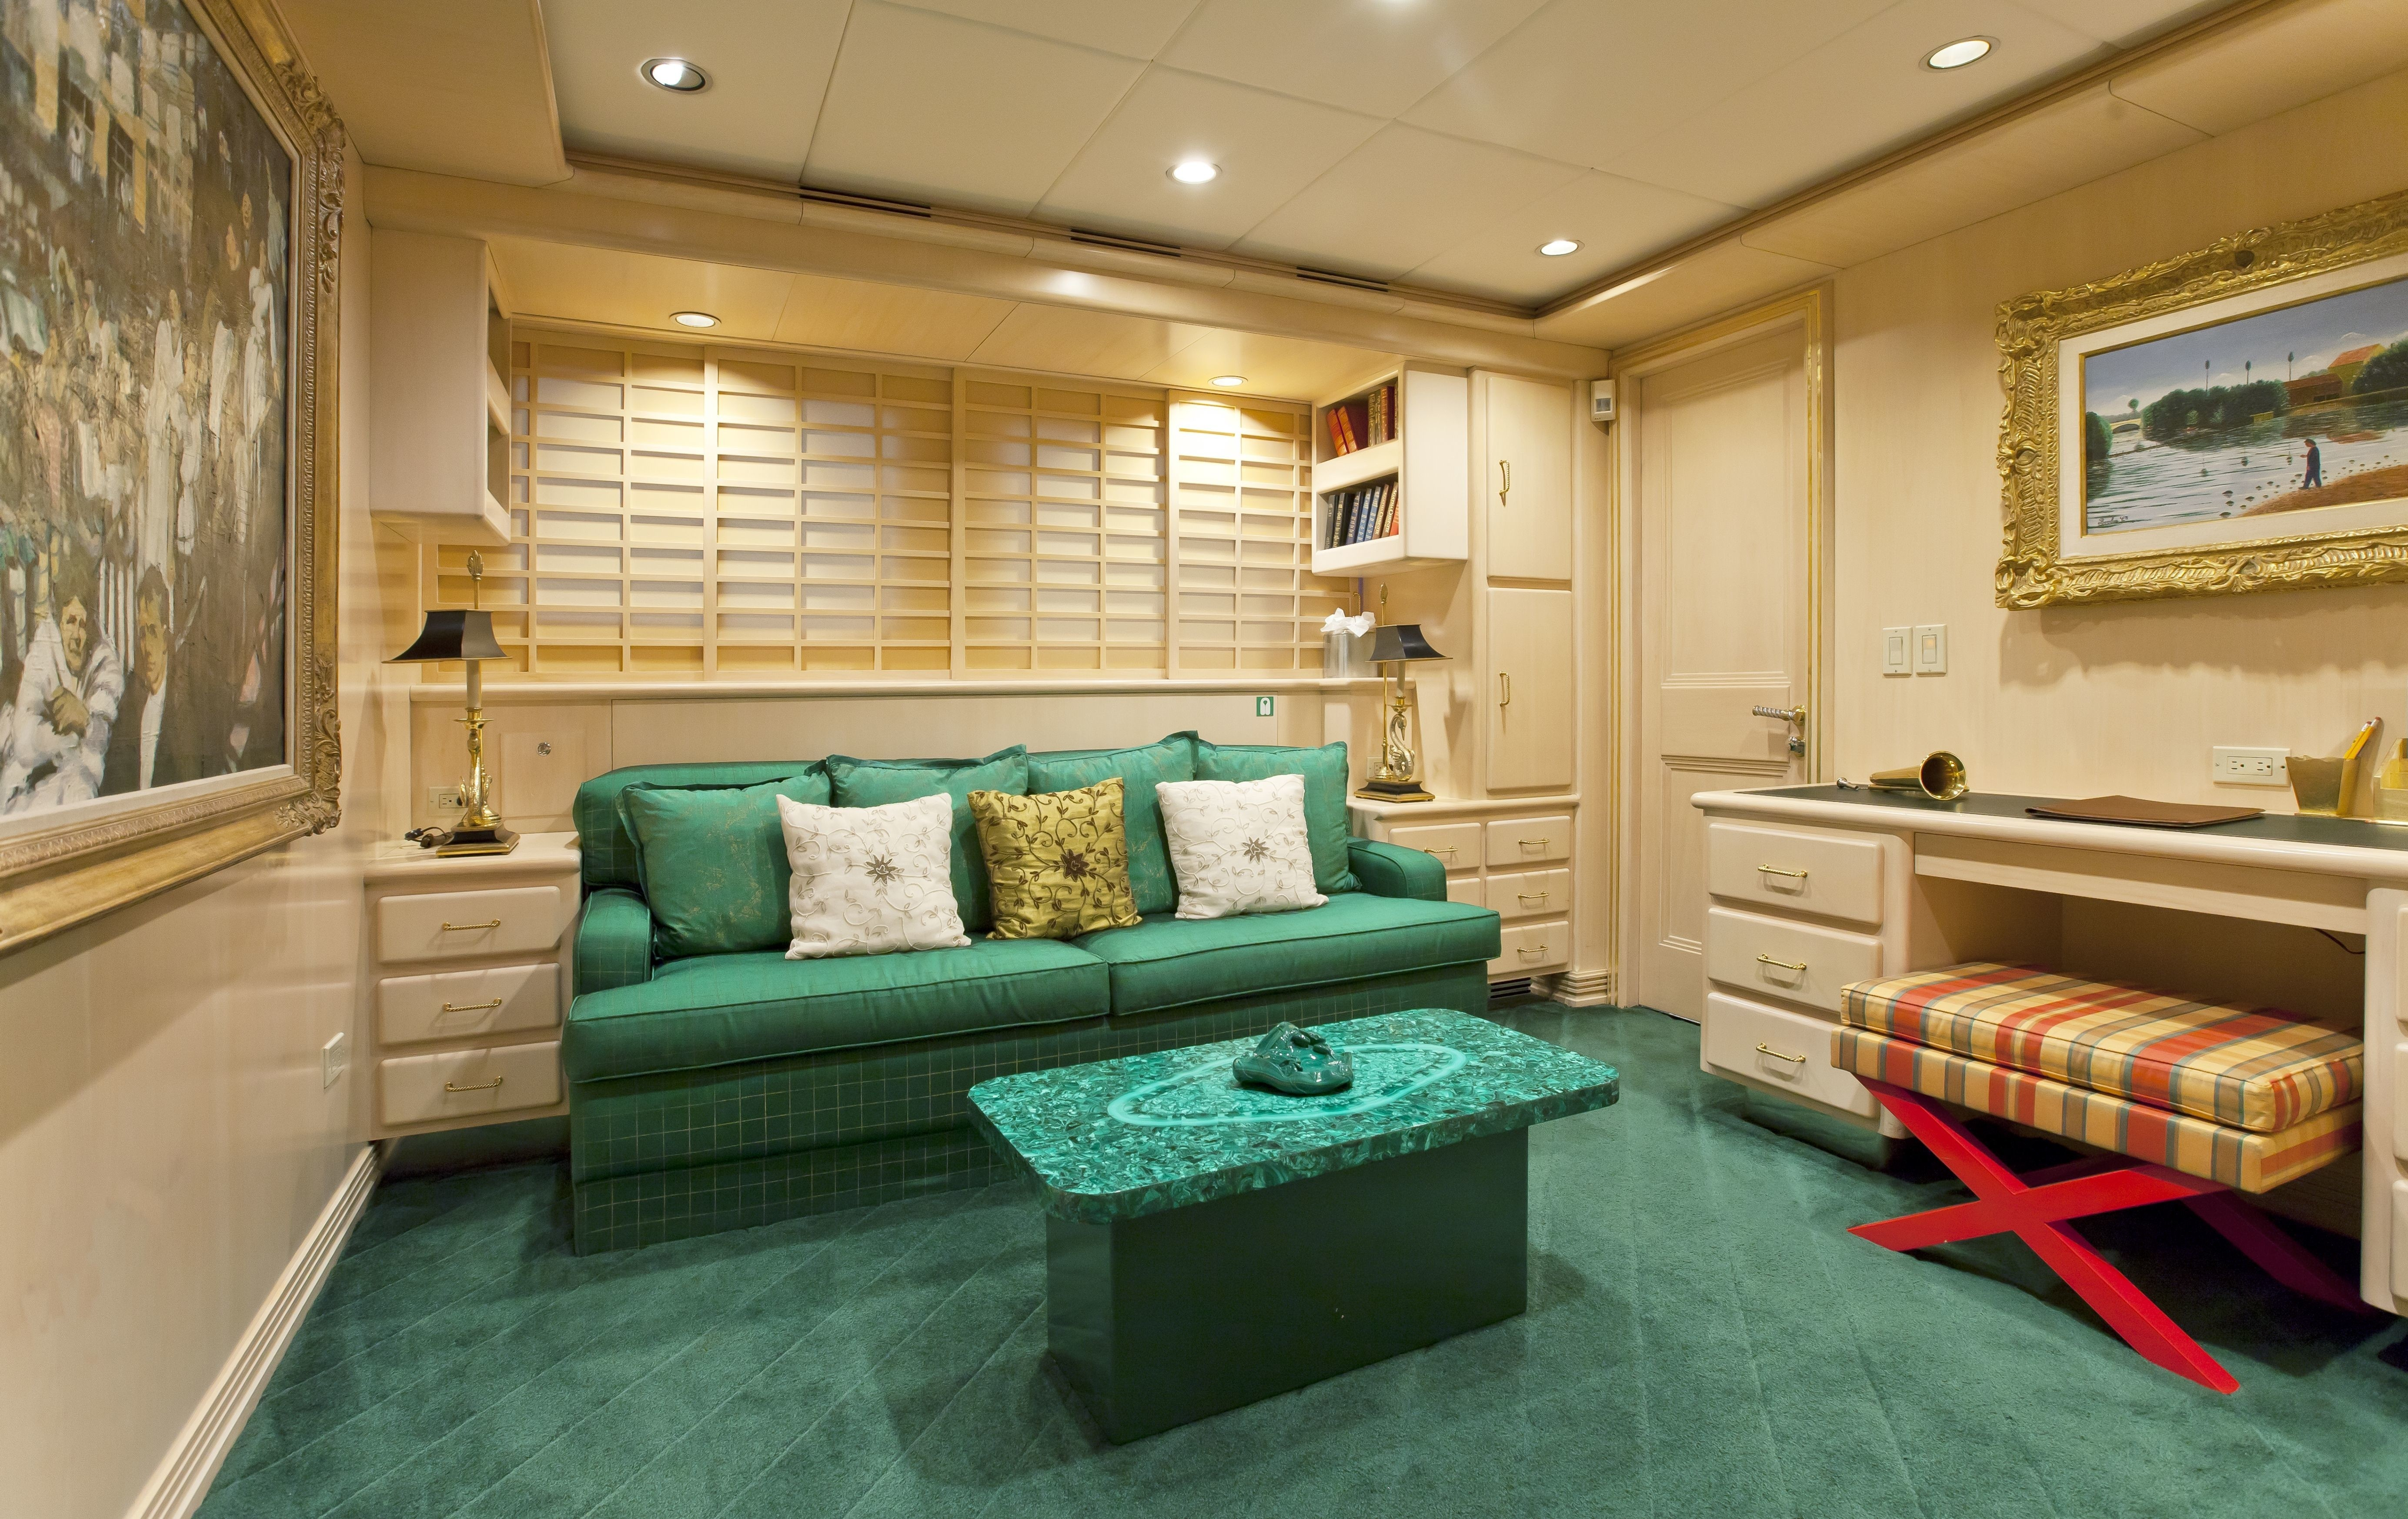 Personal Lounging Aboard Yacht FAM